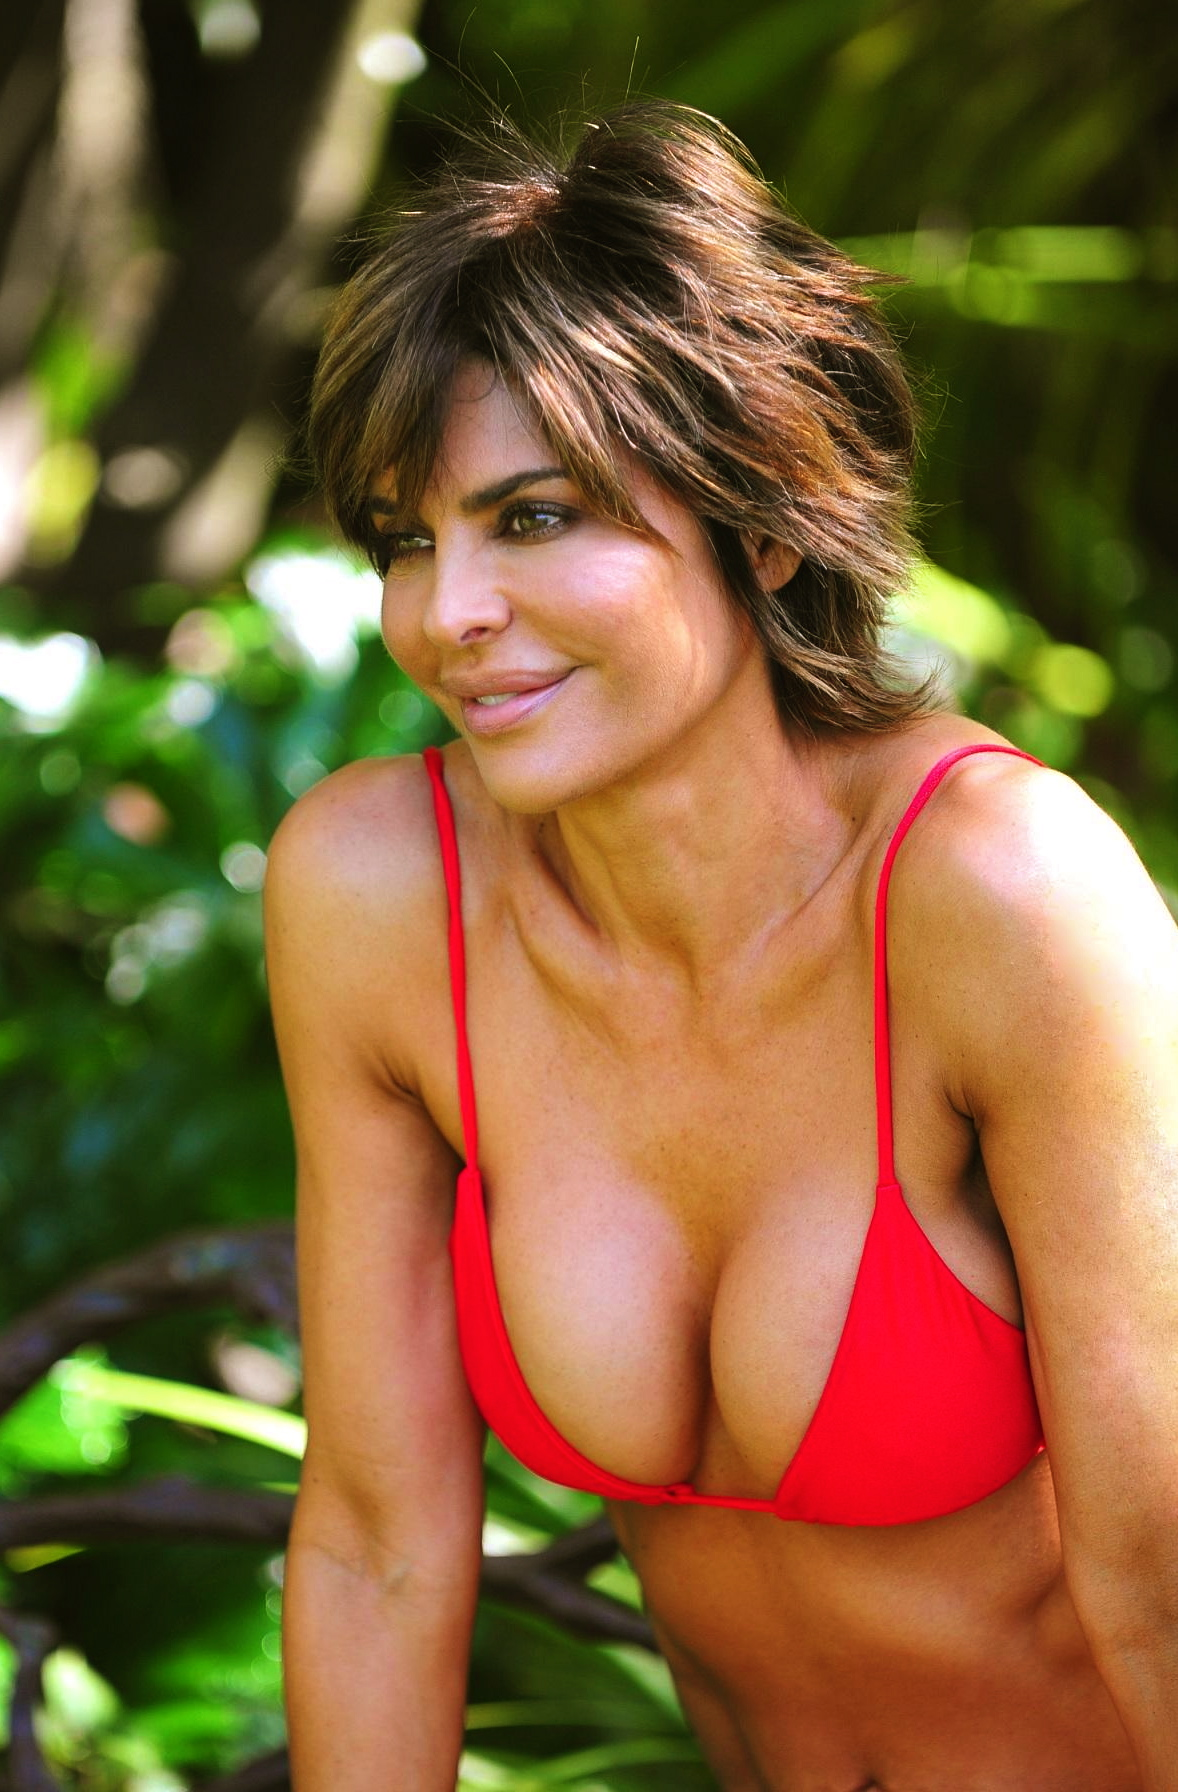 Something is. Lisa rinna hot phrase